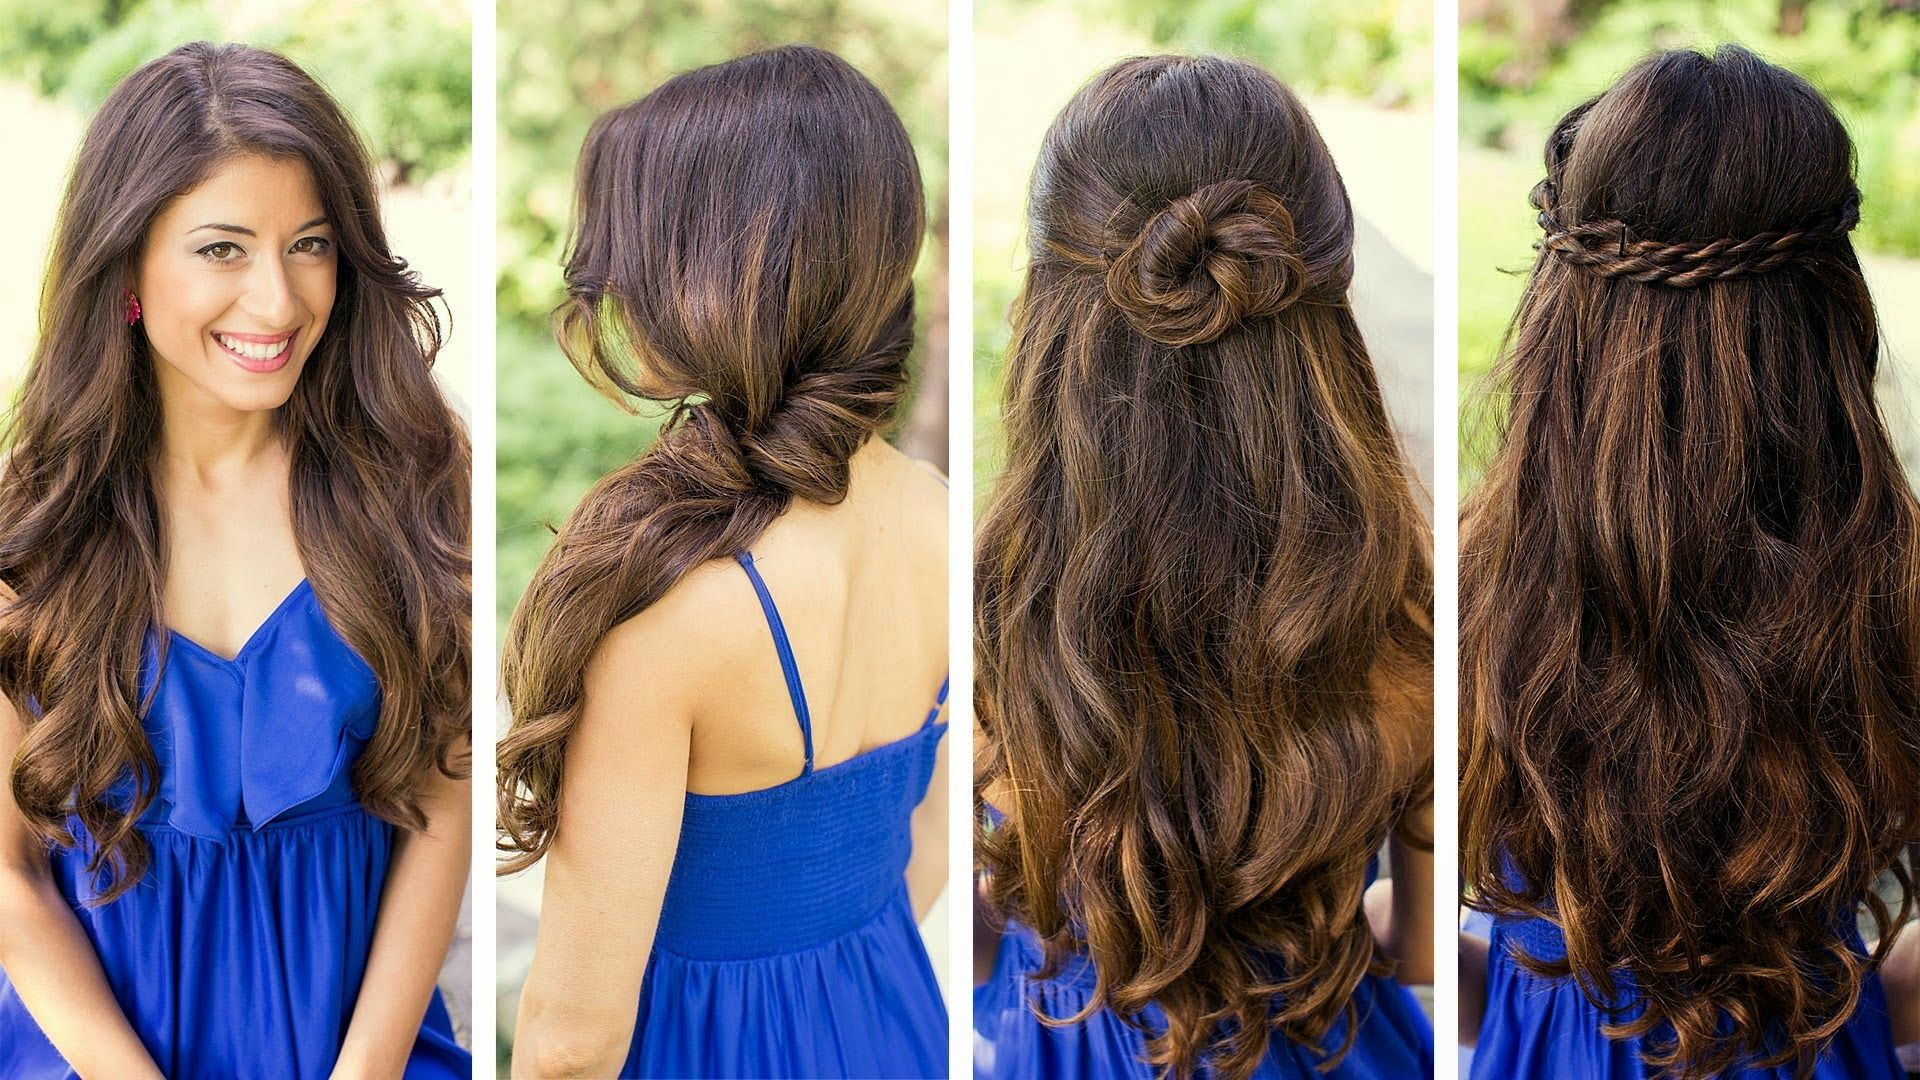 Super Hairstyle For Long Hair Long Hair And Easy Hairstyles On Pinterest Short Hairstyles For Black Women Fulllsitofus